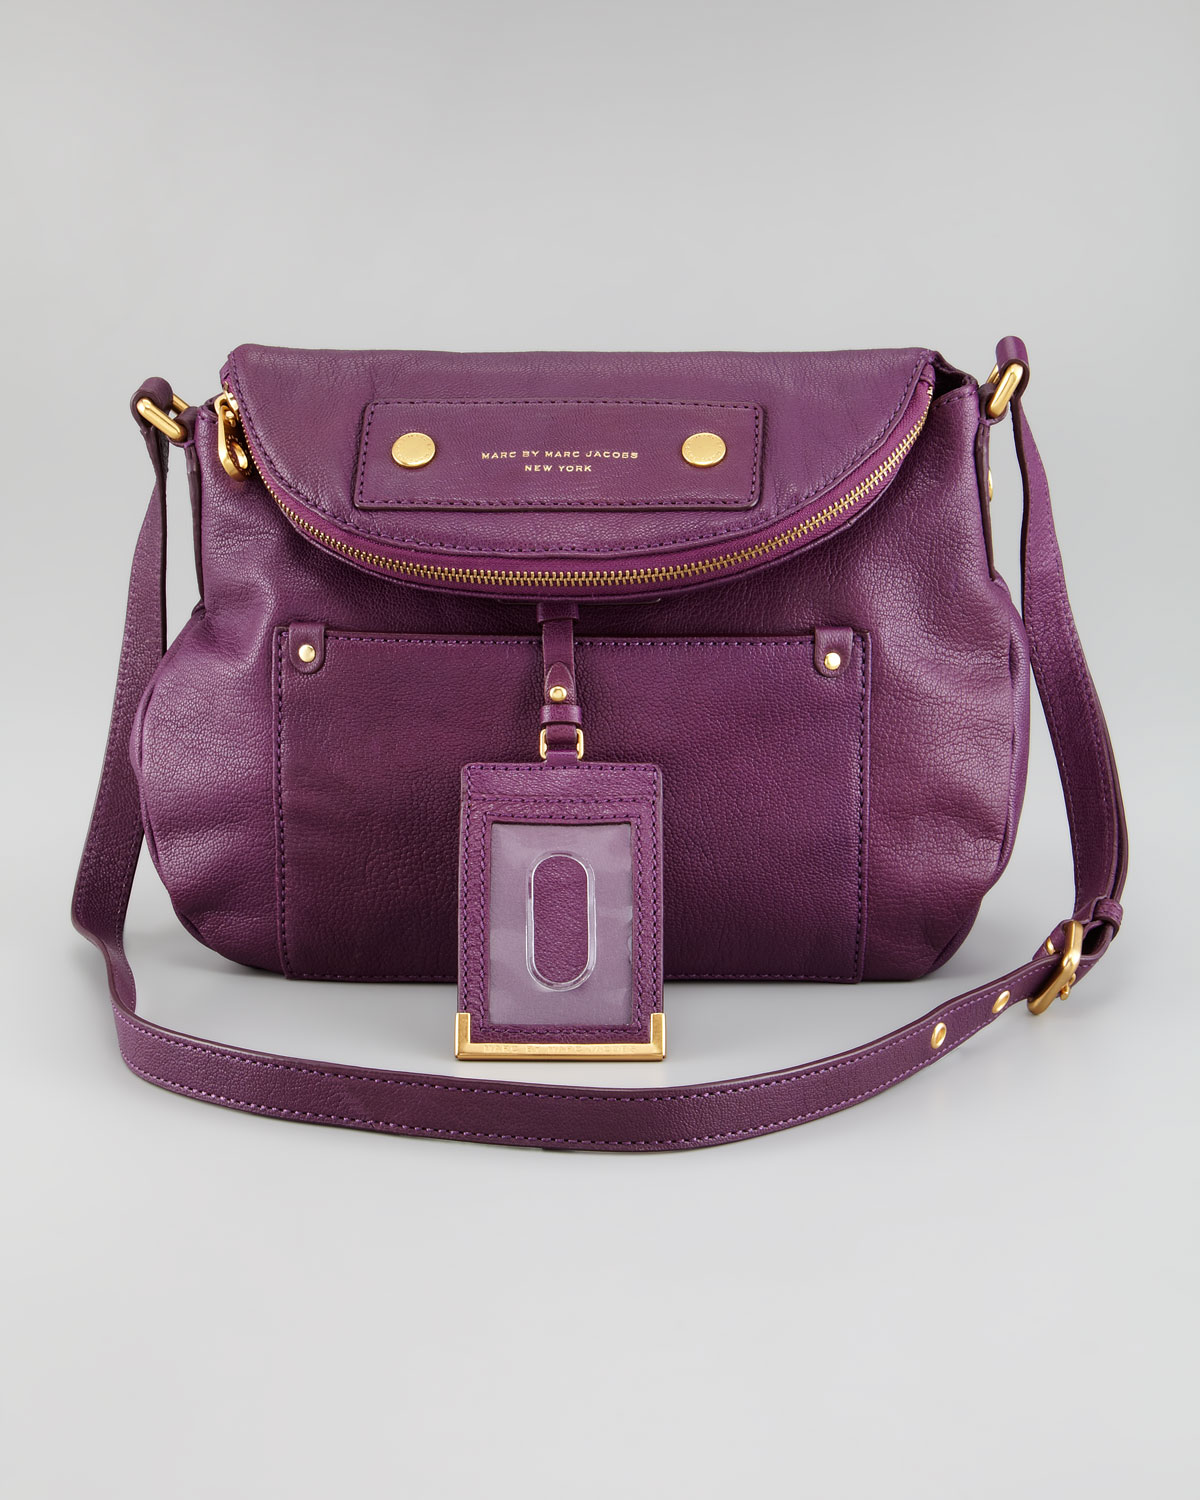 69ac214a0c Marc By Marc Jacobs Preppy Leather Natasha Bag in Purple - Lyst